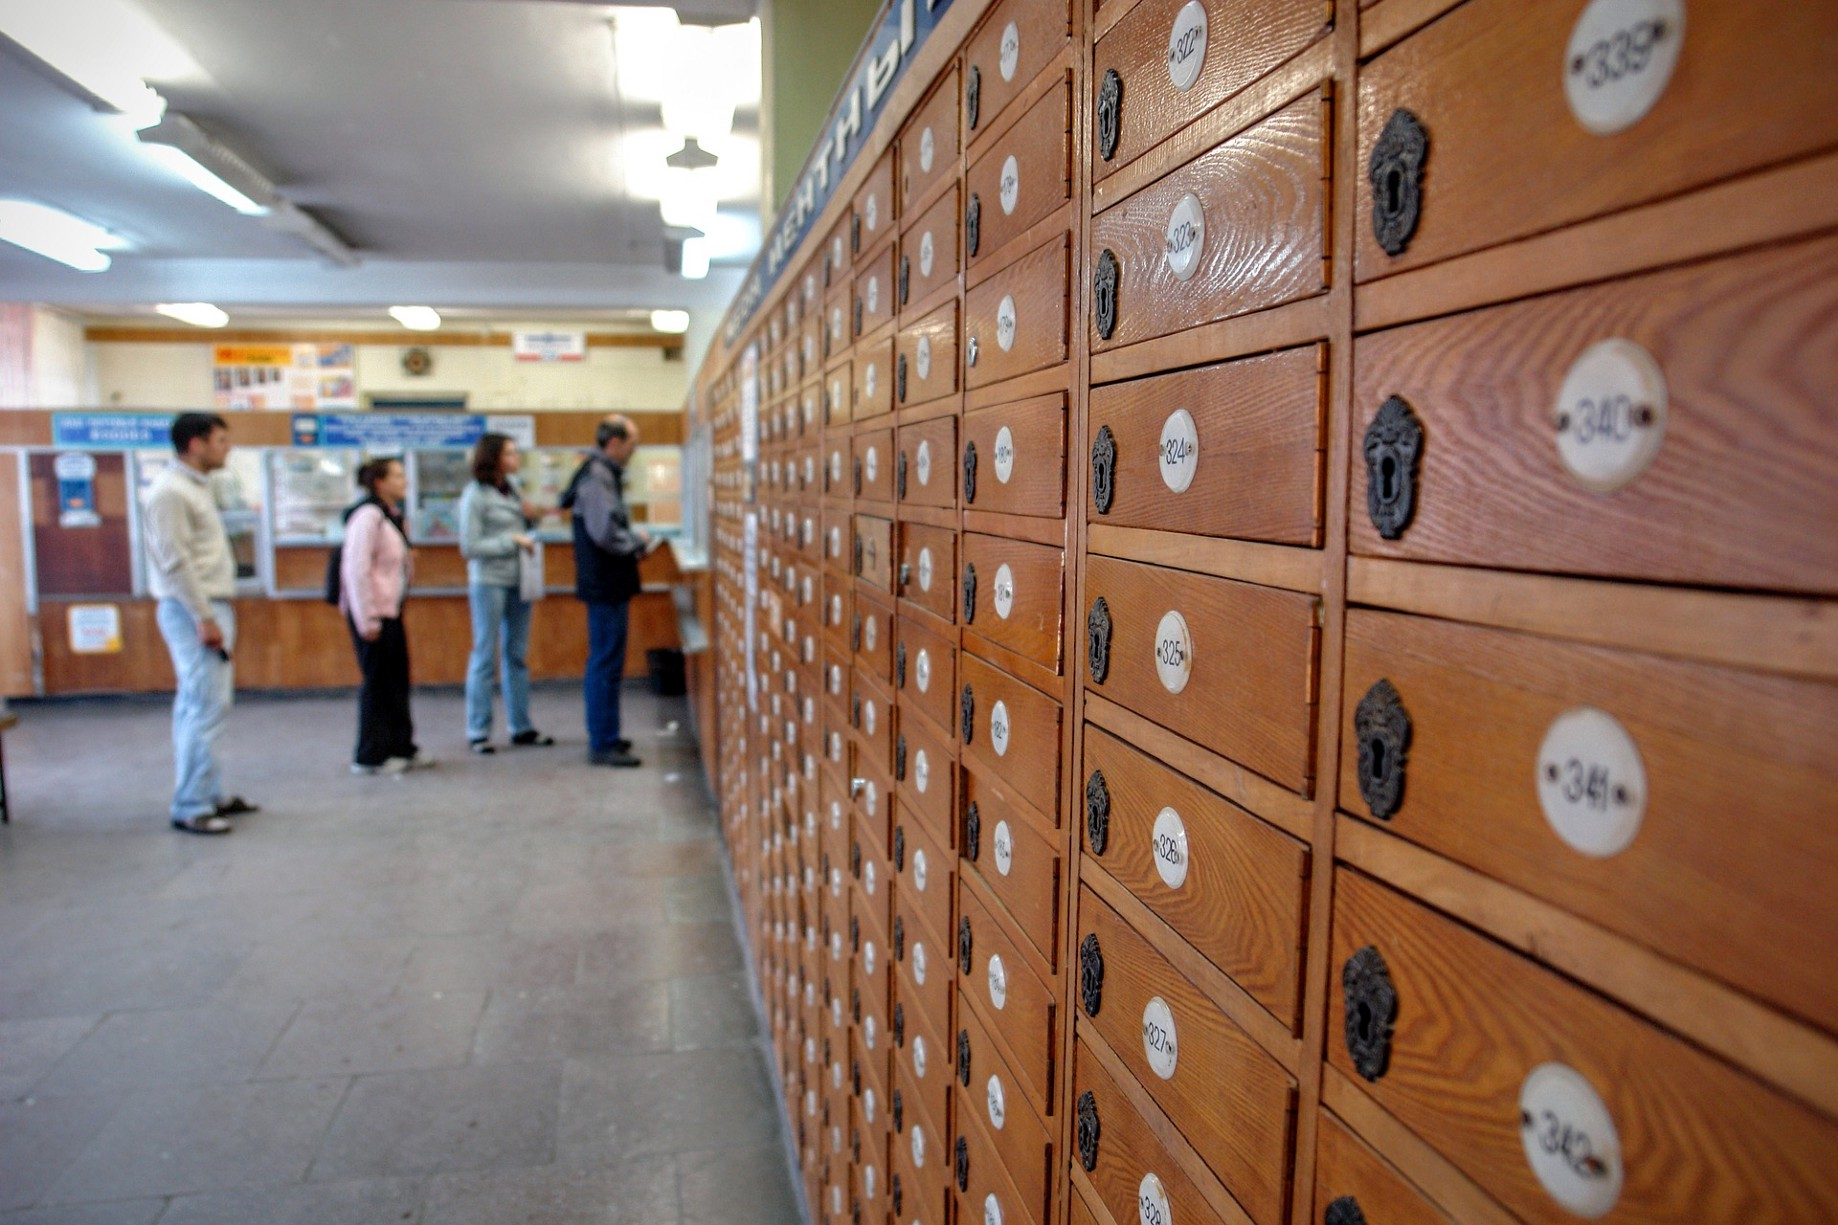 Post Office Box (PO Box) vs Private Mailbox (PMB) Rental — which is